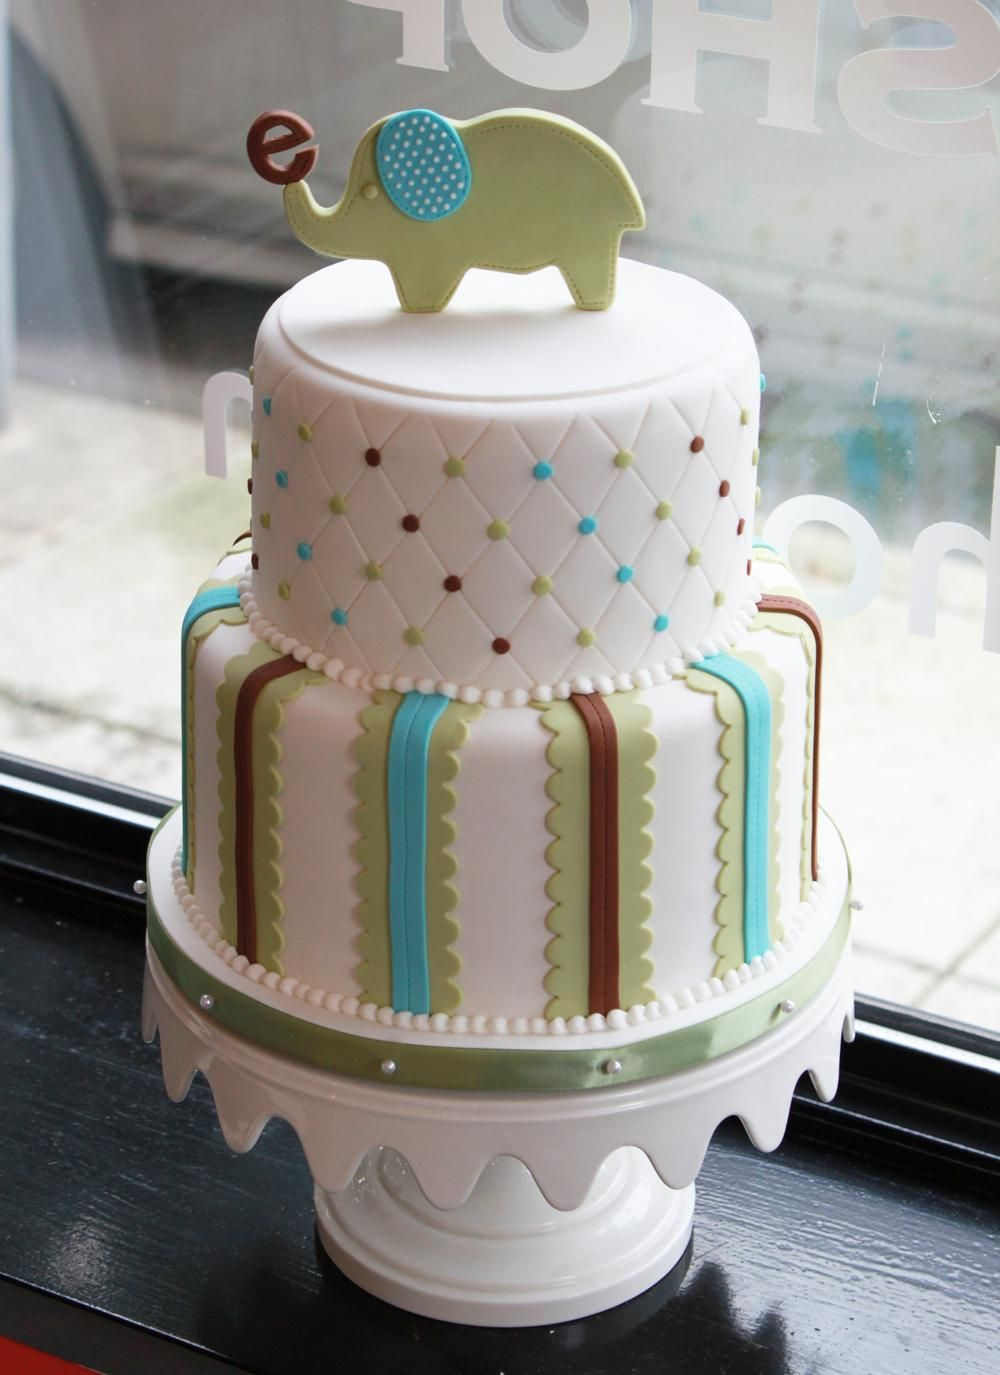 Amazing Baby Shower Cakes! Cute baby shower cakes! | Baby ...